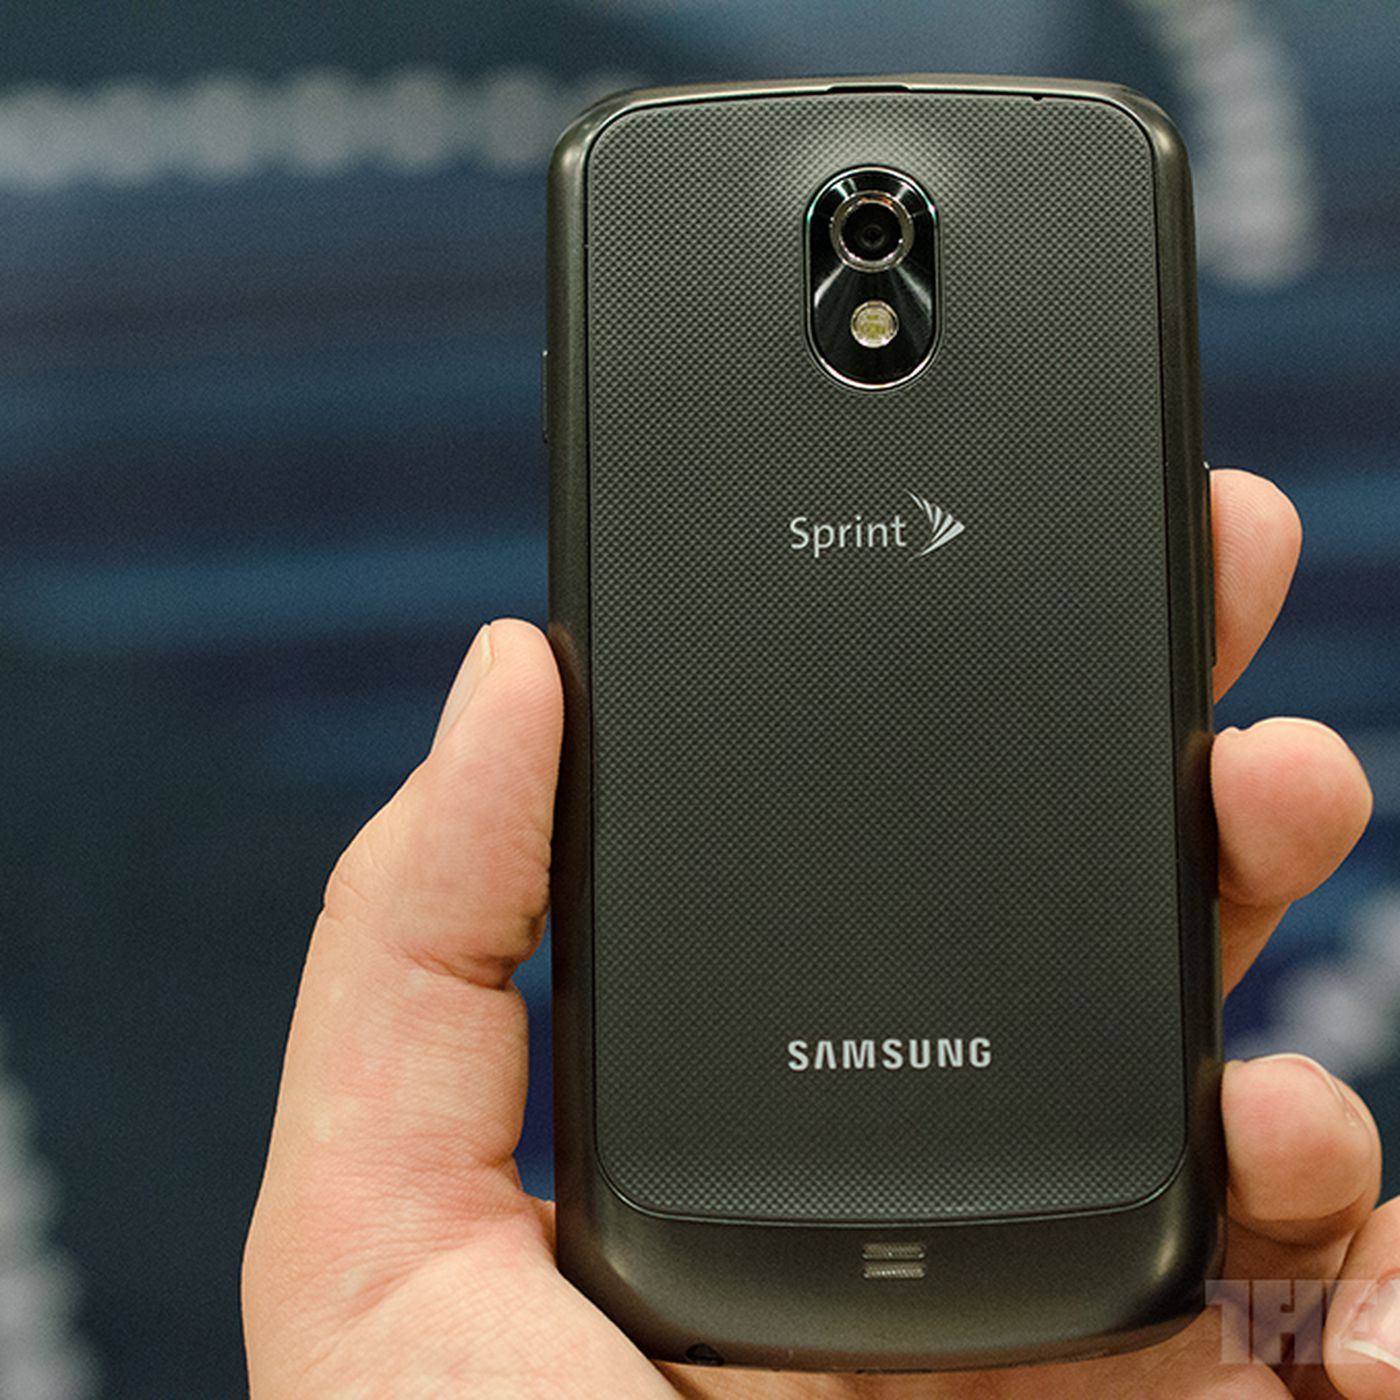 Sprint endorses using old, out-of-contract phones on MVNO